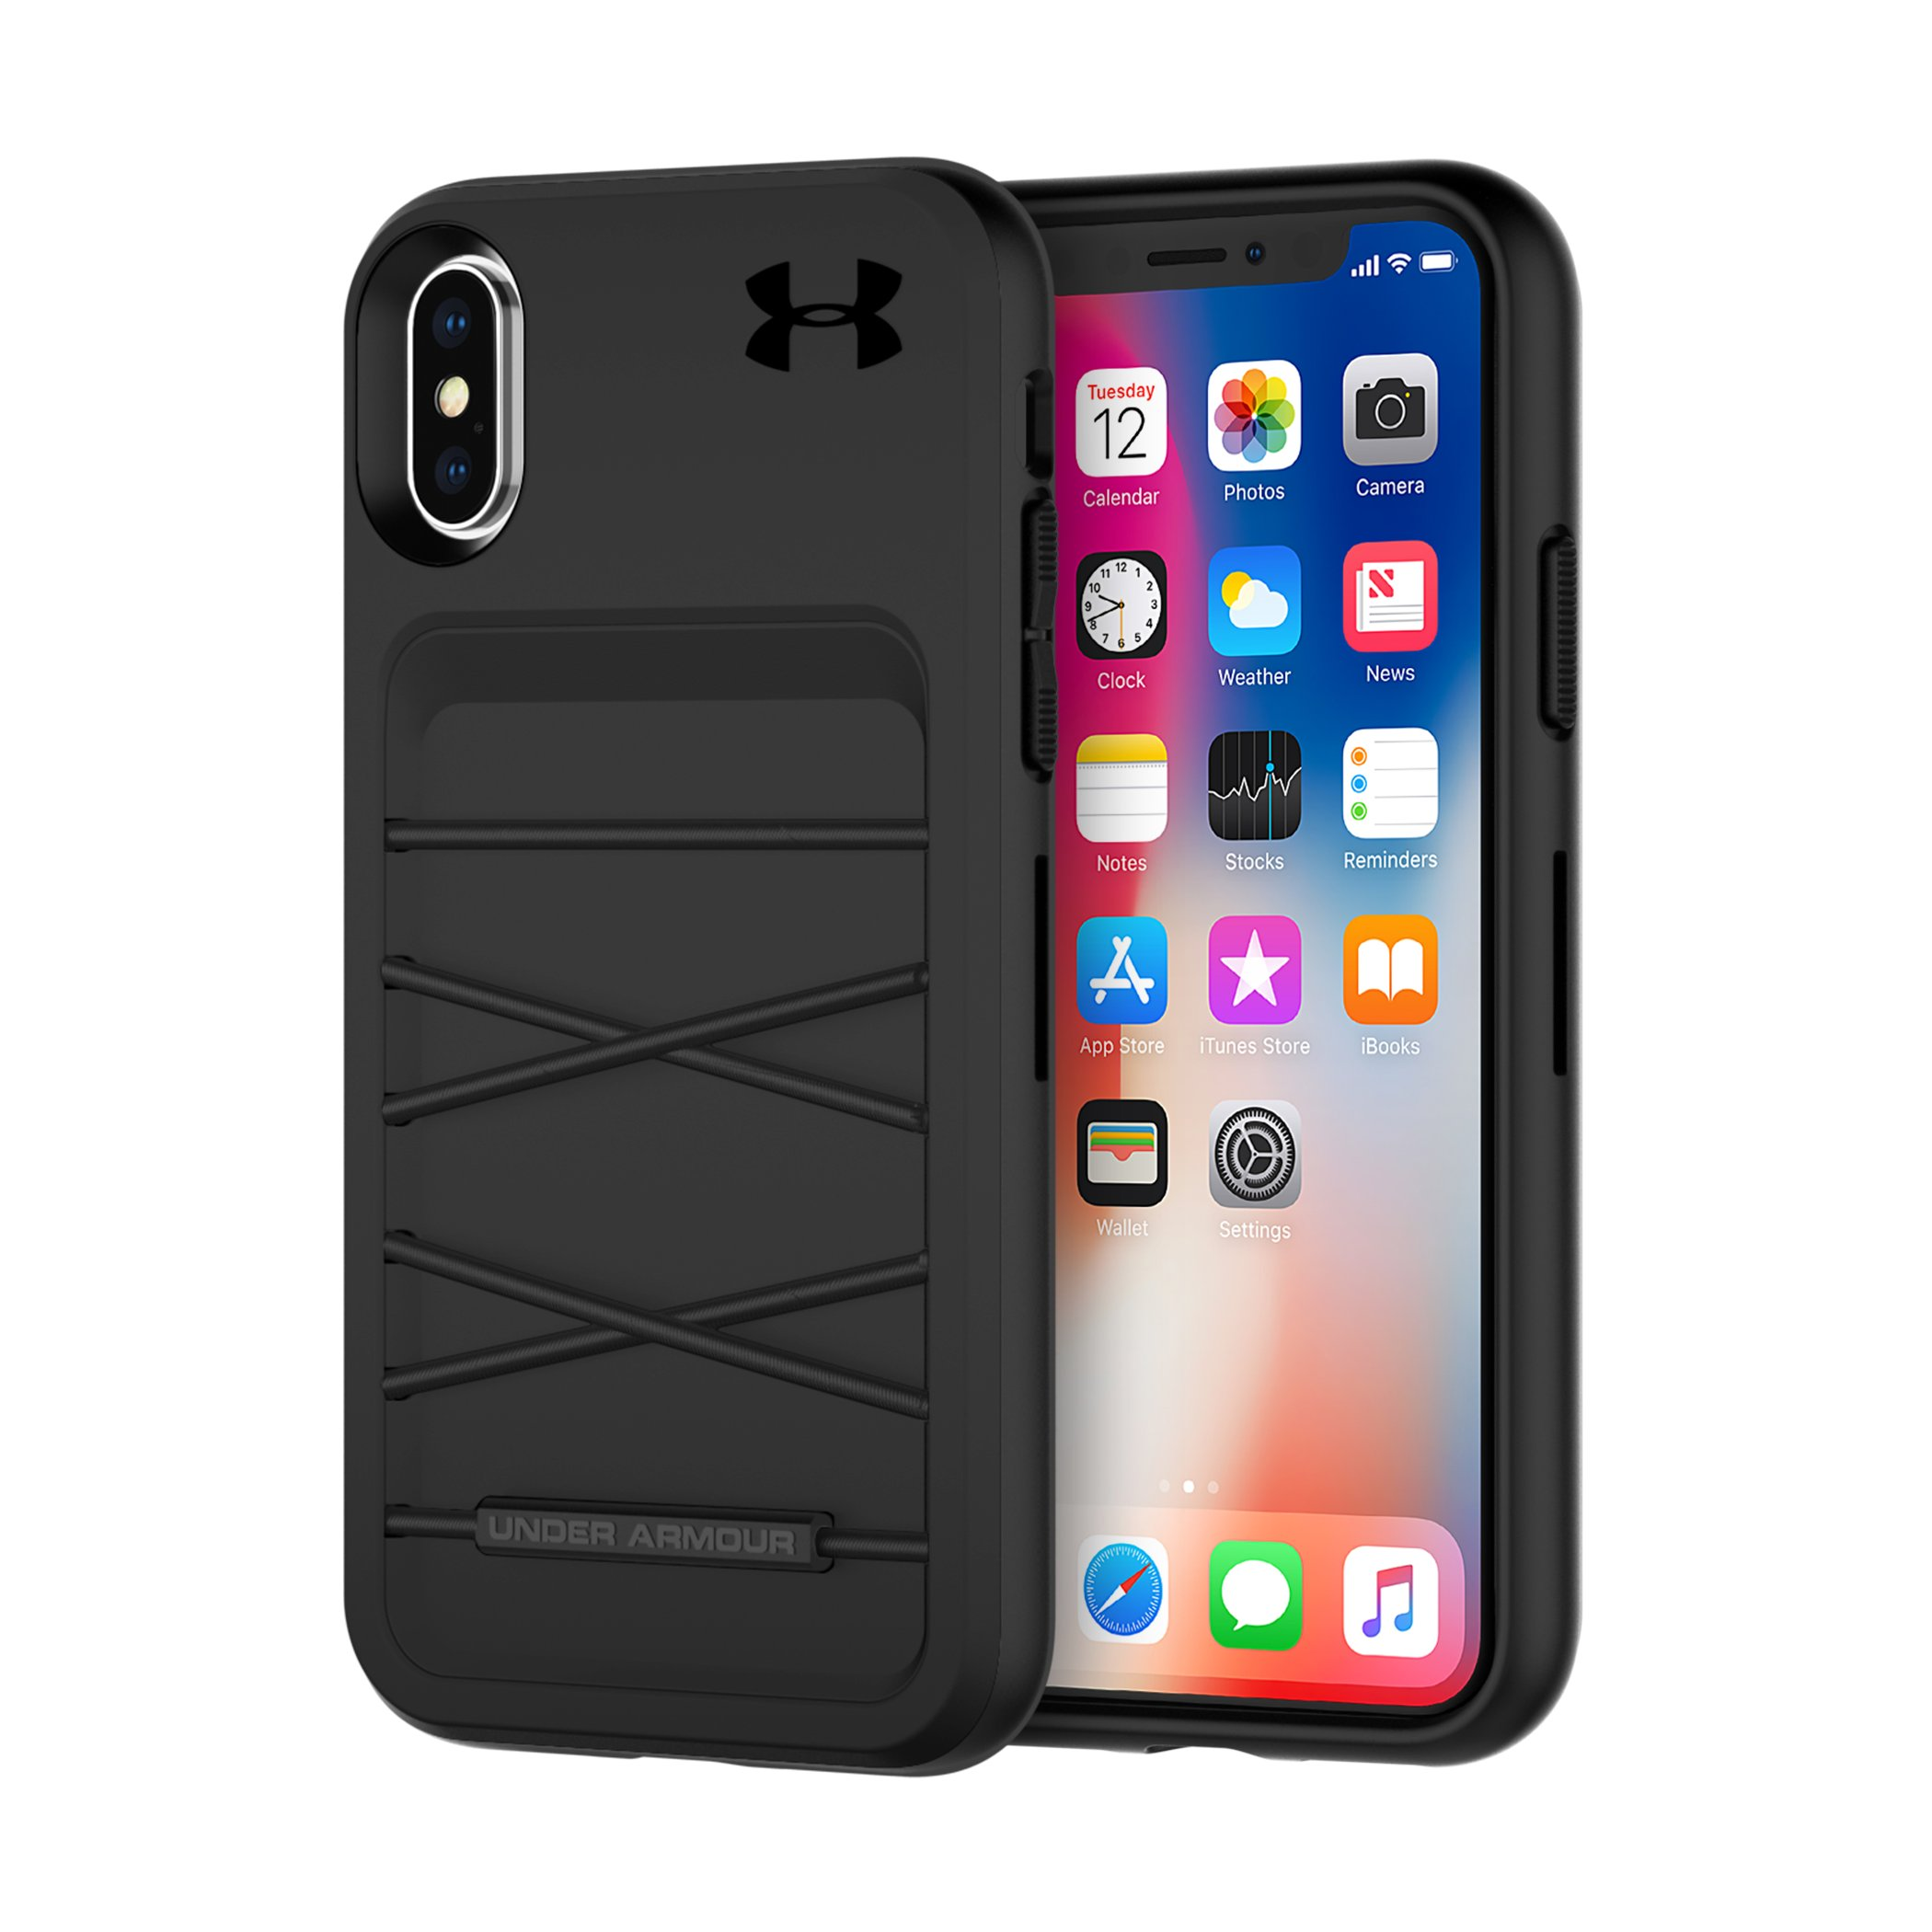 protection cases UA Protect Arsenal Case for iPhone X <strong>Shockproof case</strong> with multiple layers of device <strong>protection</strong>.